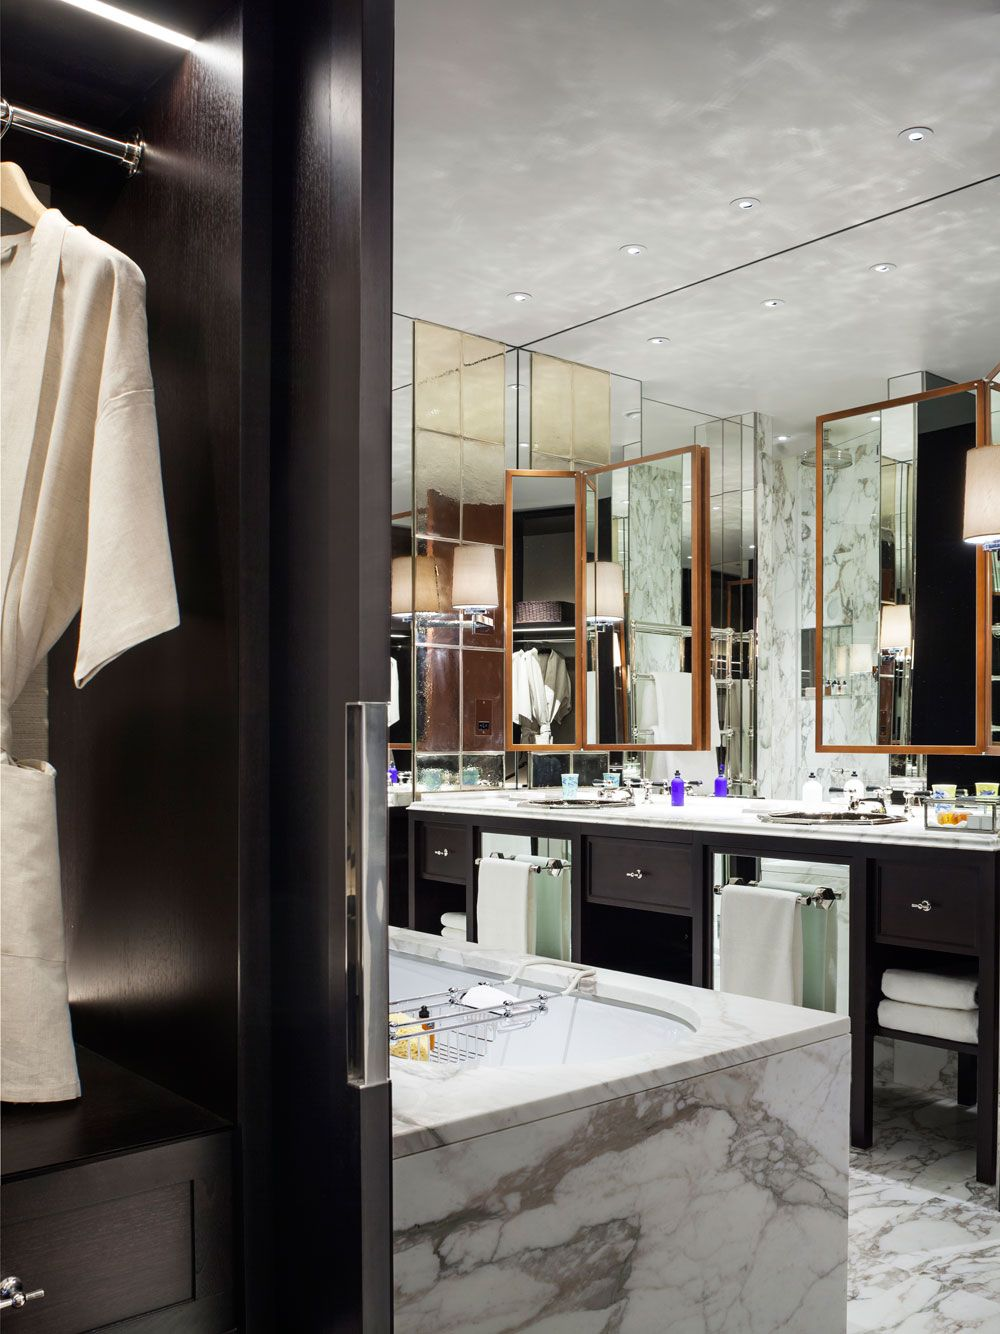 Rosewood London  Luxury Hotel In London United Kingdom  The Inspiration Luxury Hotel Bathroom Review